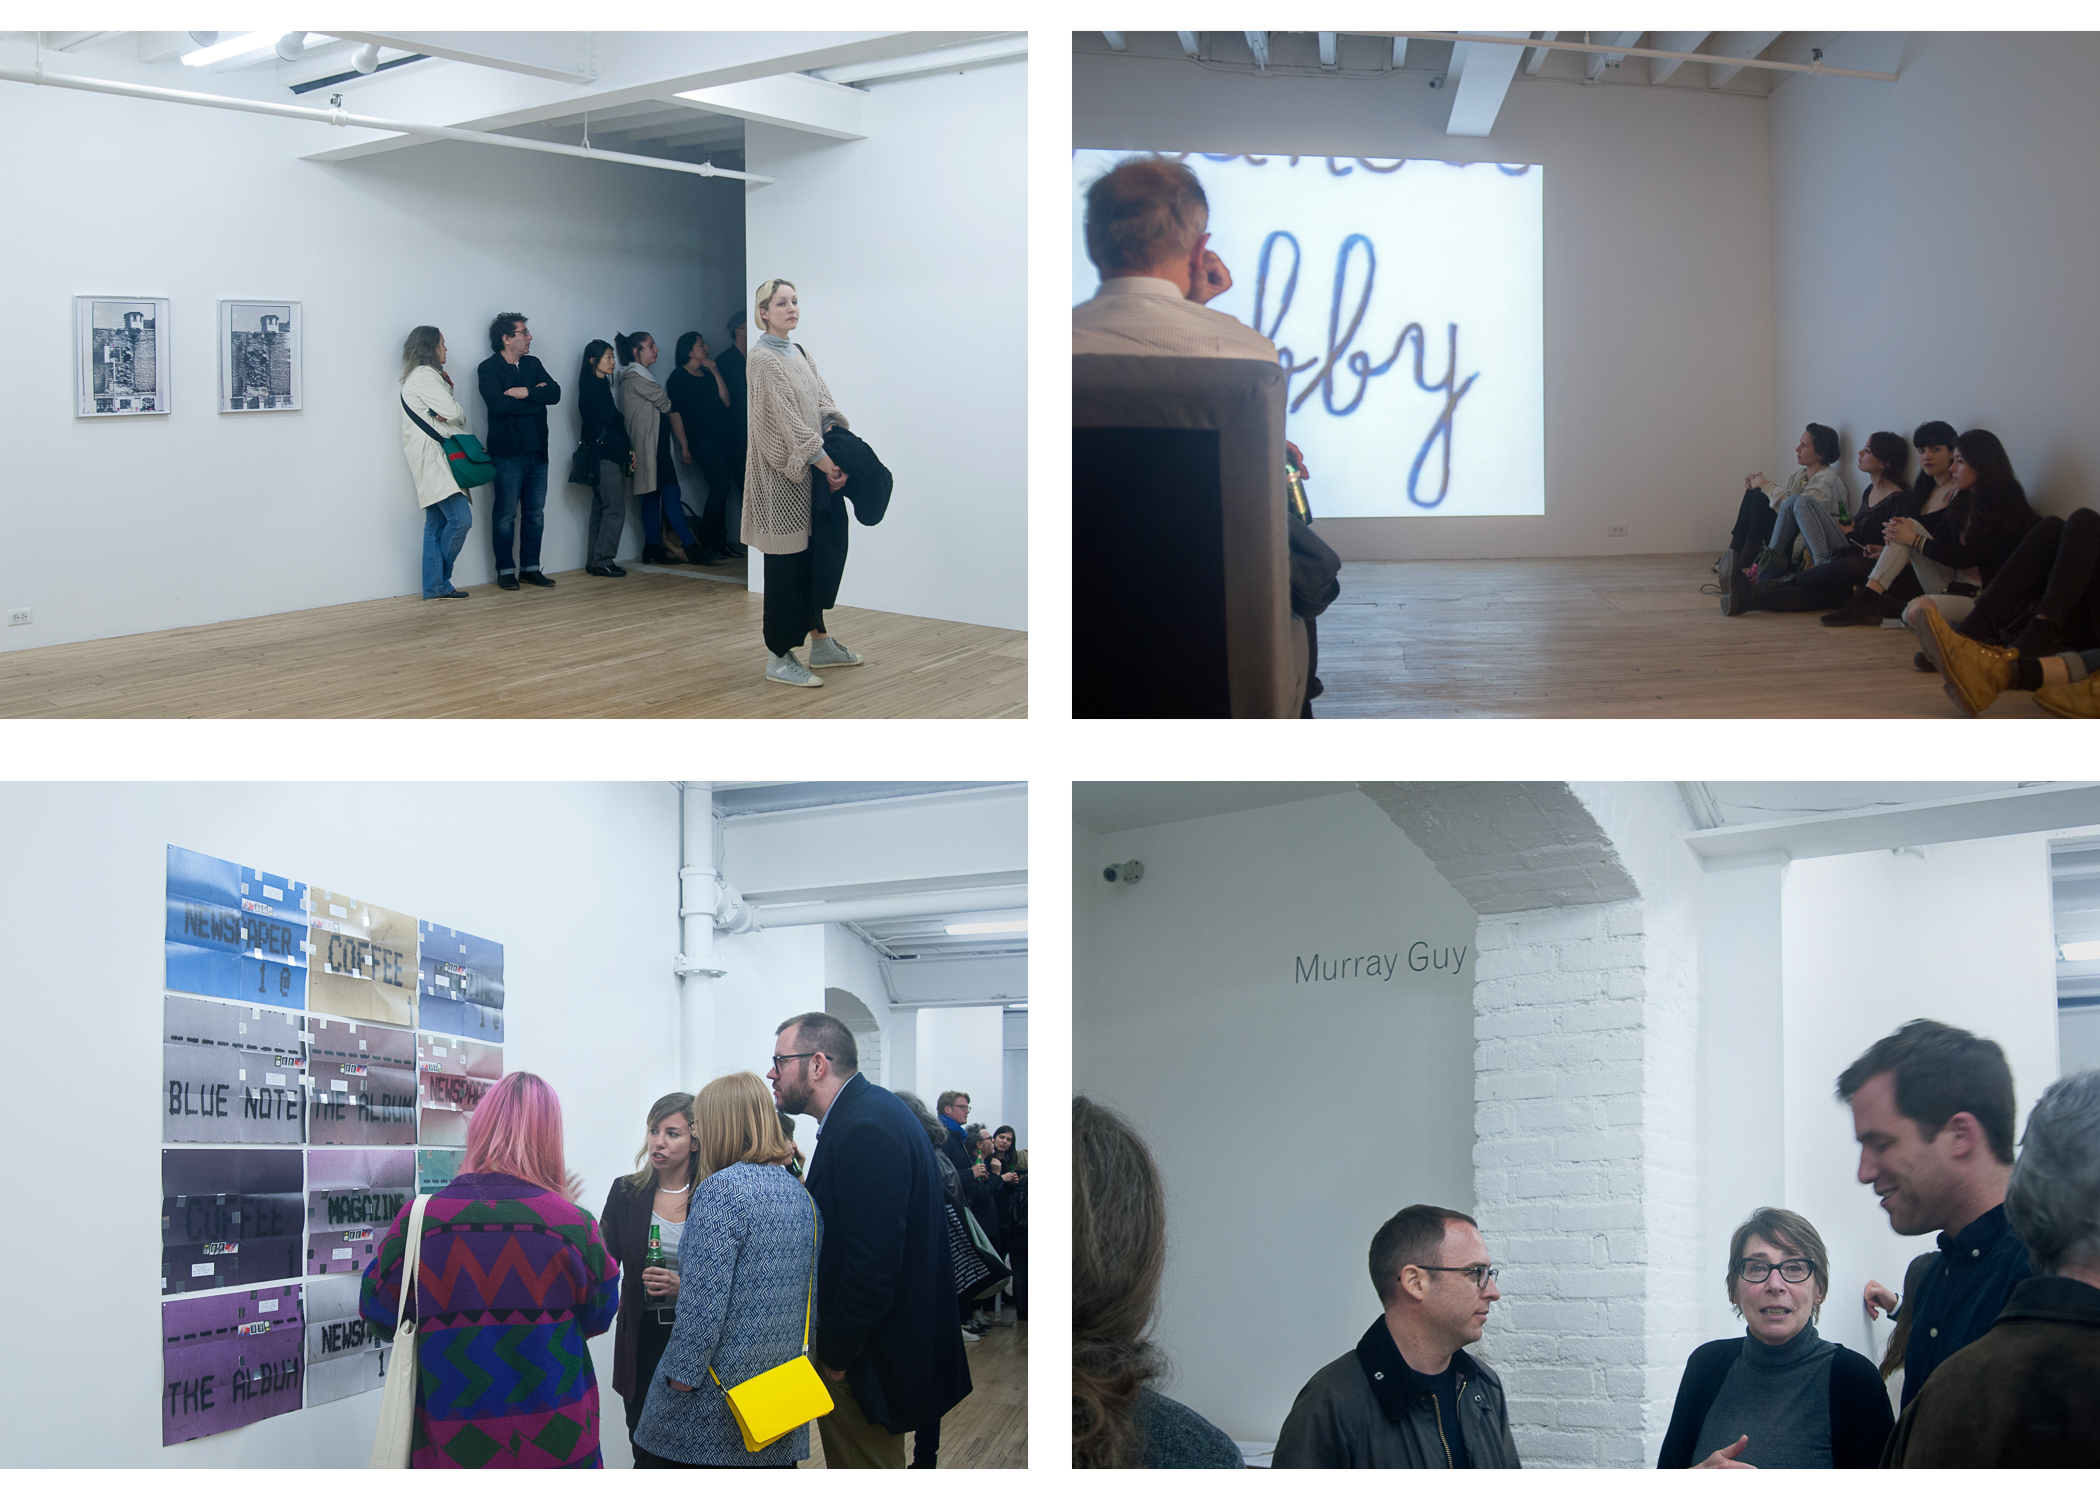 Images above: ©Sang Ha Park, Opening night, Bottom right: Janice Guy